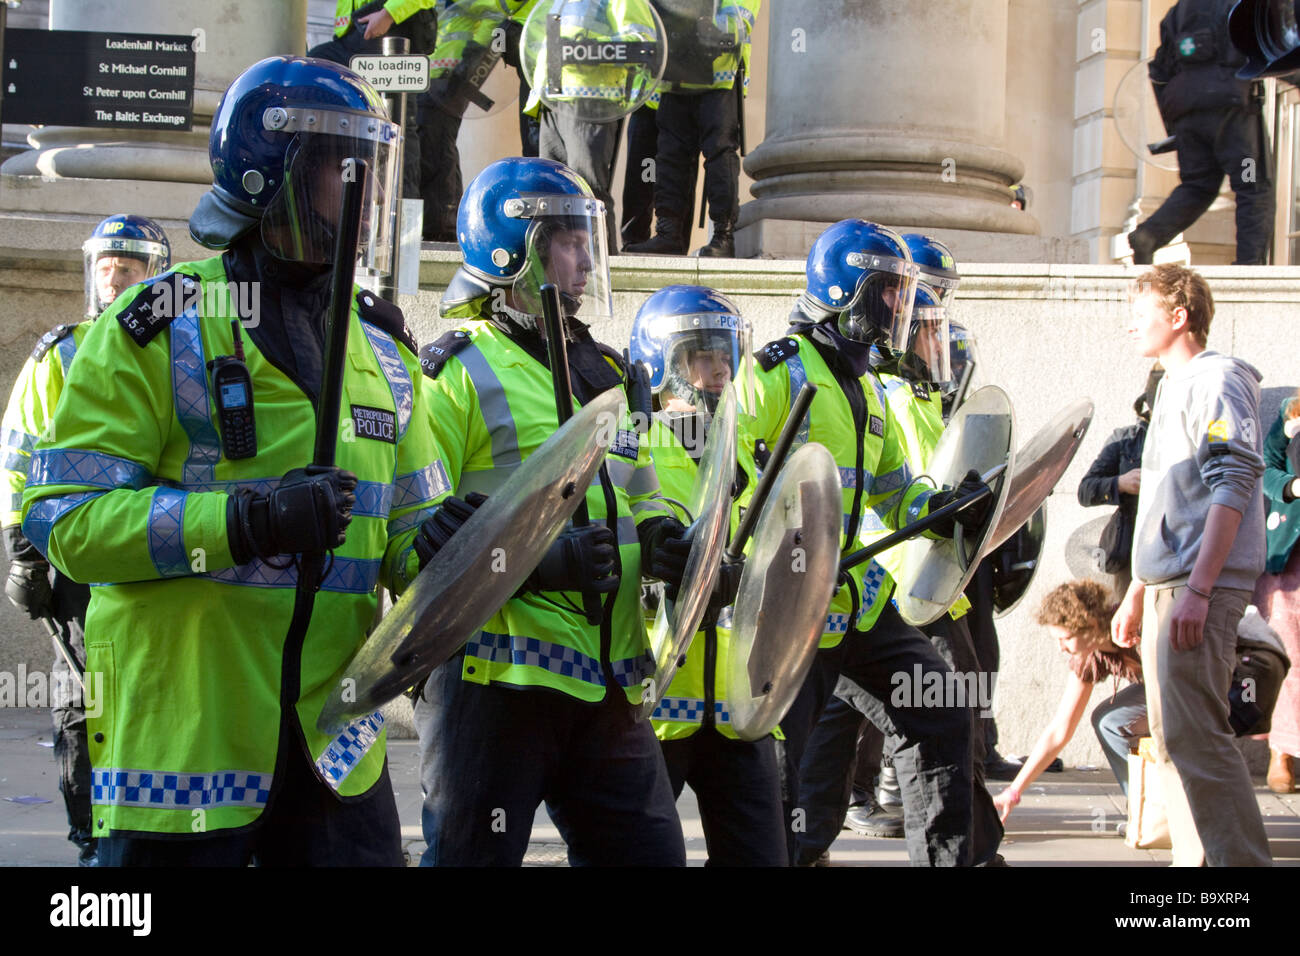 Riot Police at G20 summit protests - Cornhill Street - City of London - Stock Image